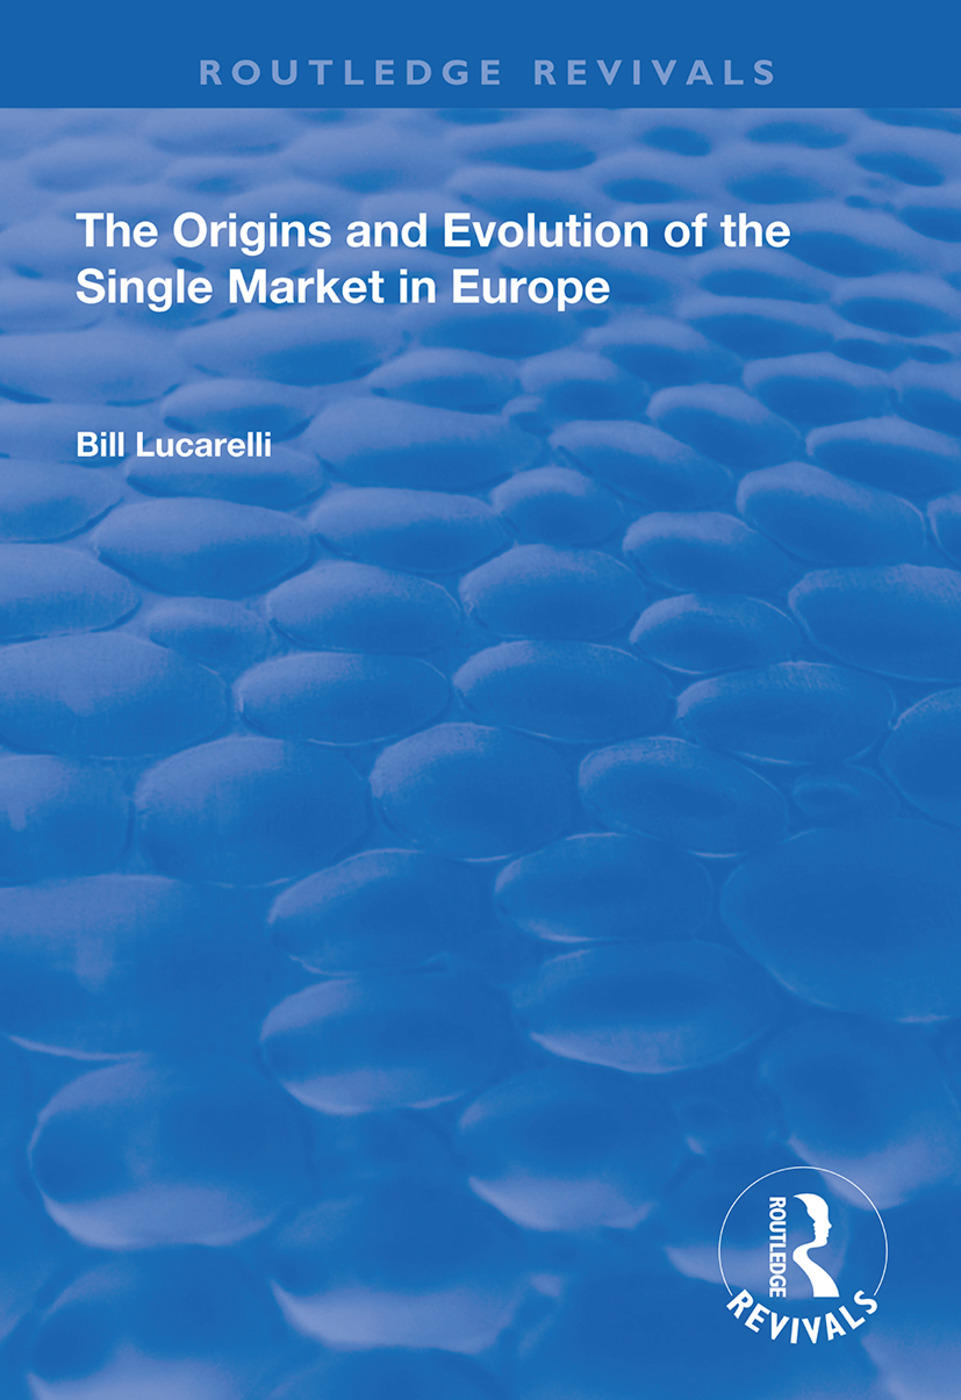 The Origins and Evolution of the Single Market in Europe